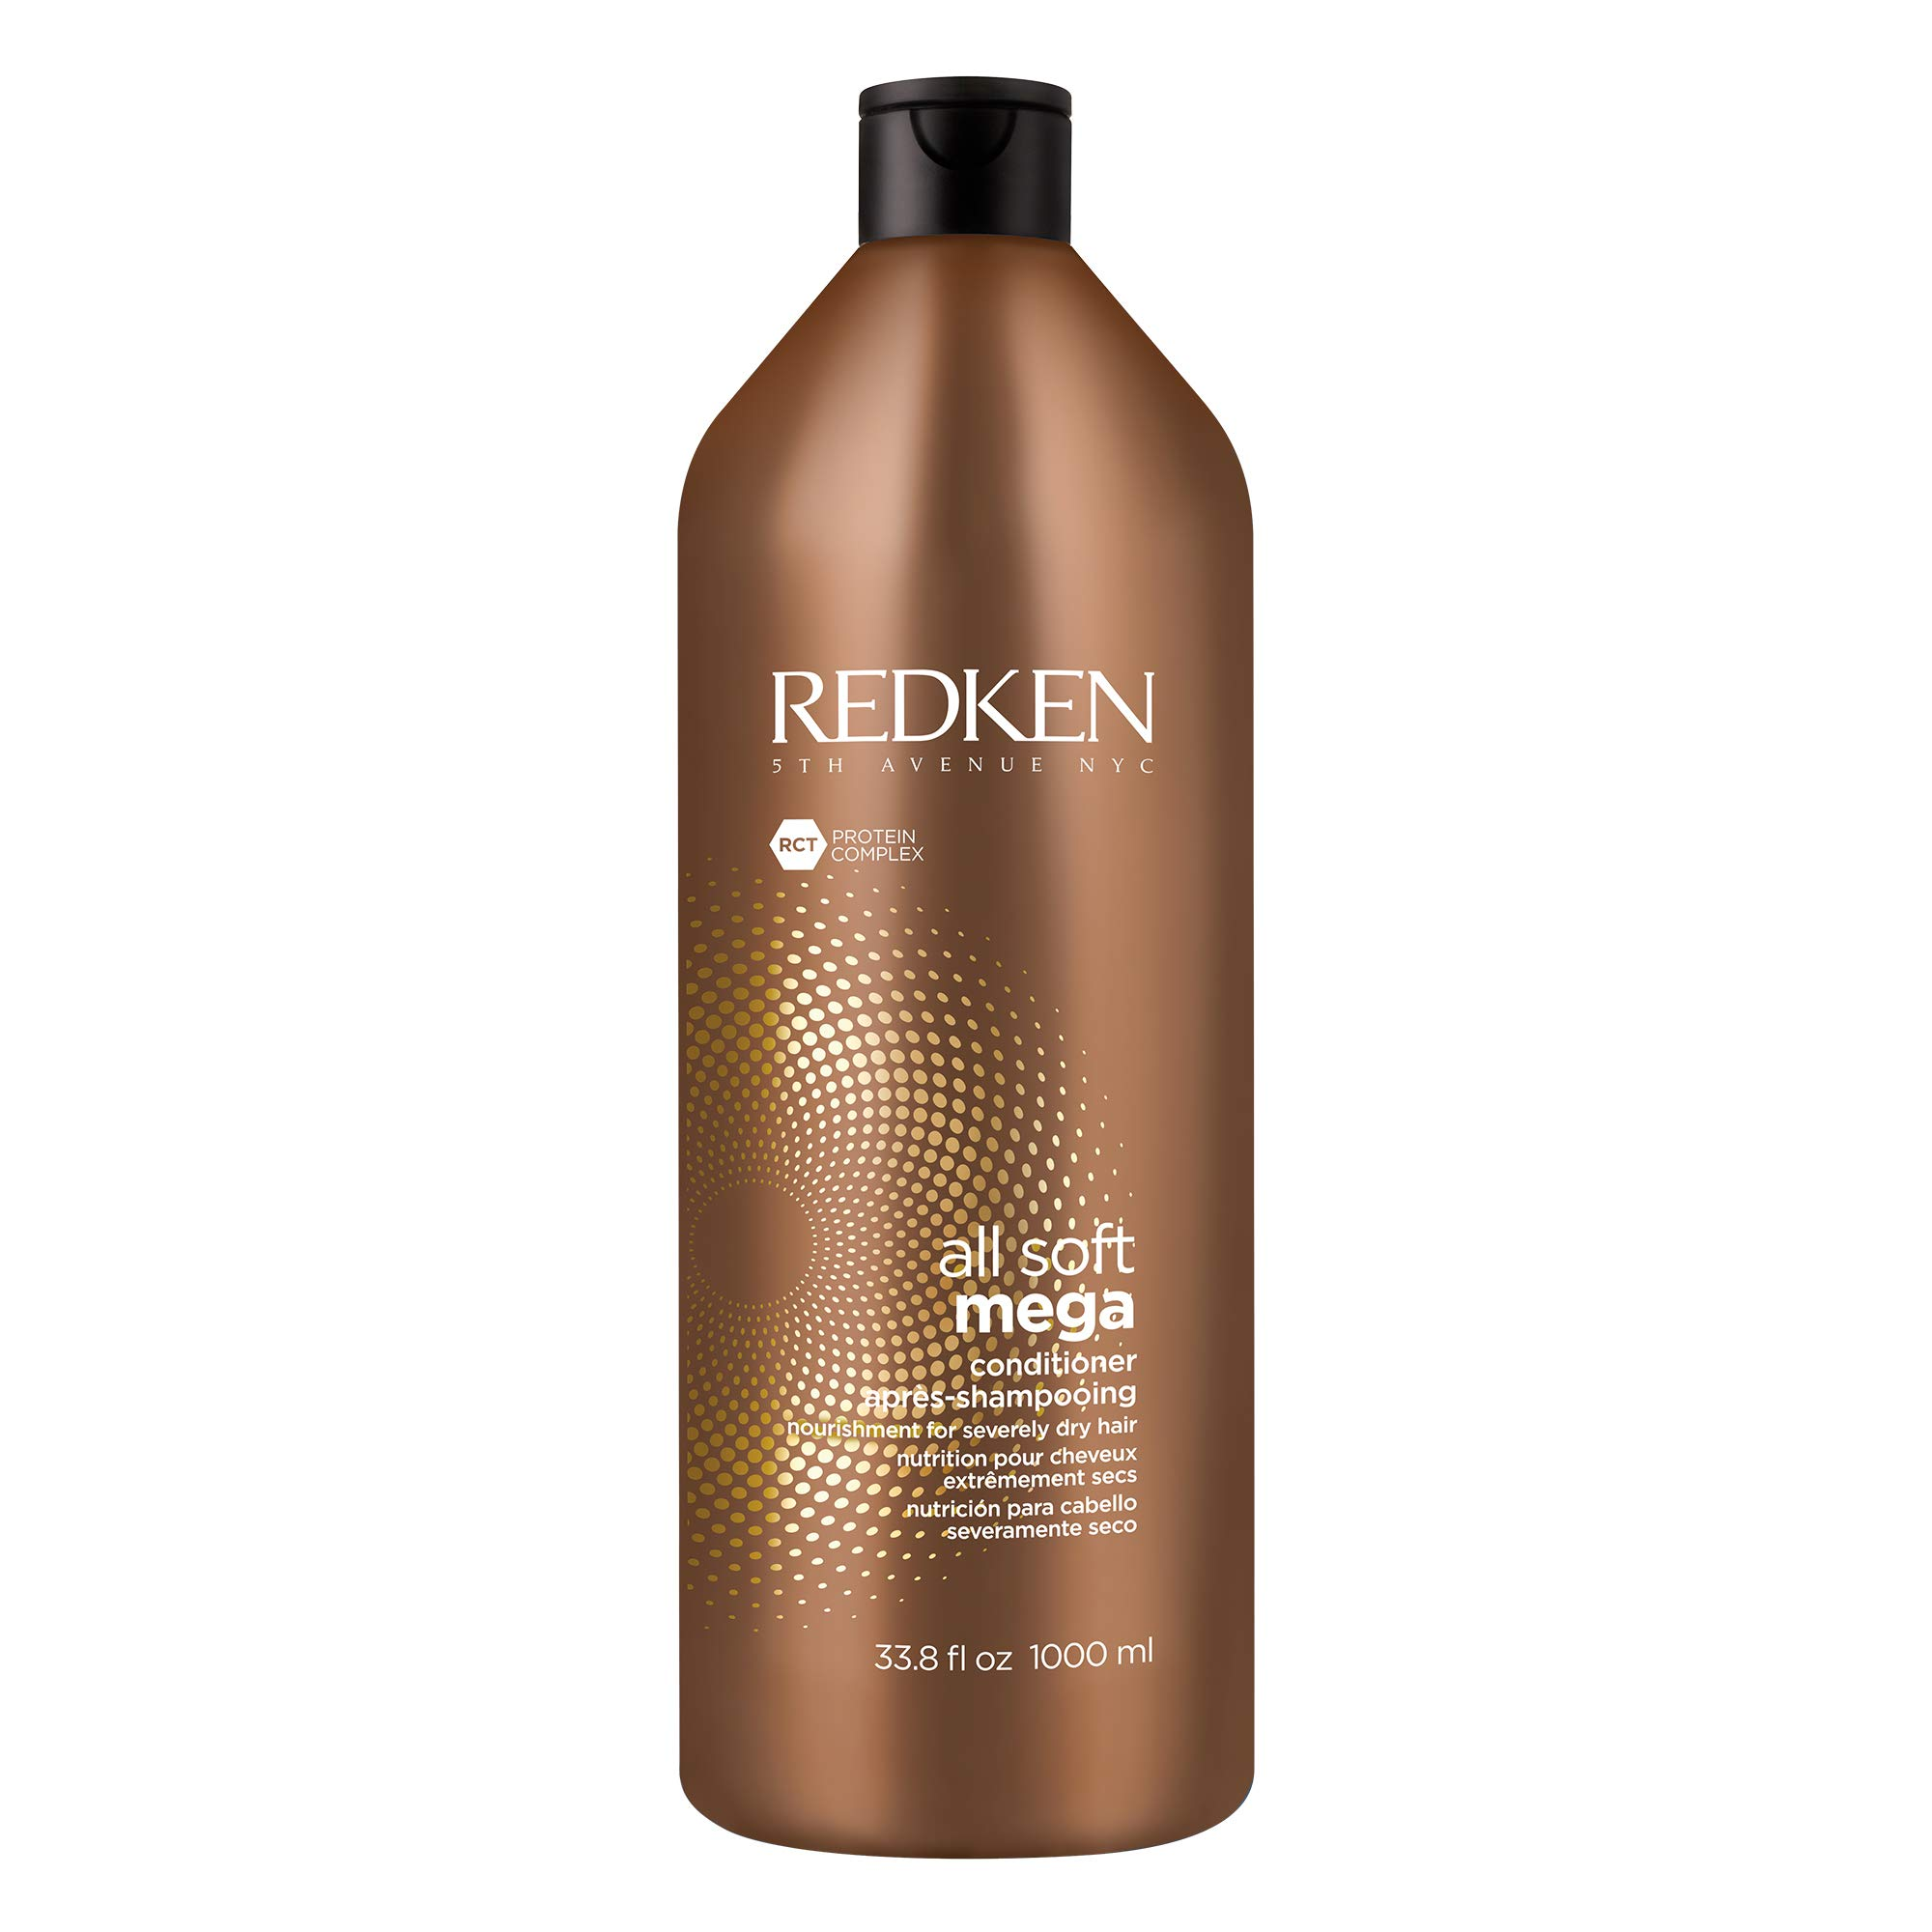 Redken All Soft Mega Conditioner | For Extremely Dry Hair | Nourishes & Softens Severely Dry Hair | With Aloe Vera